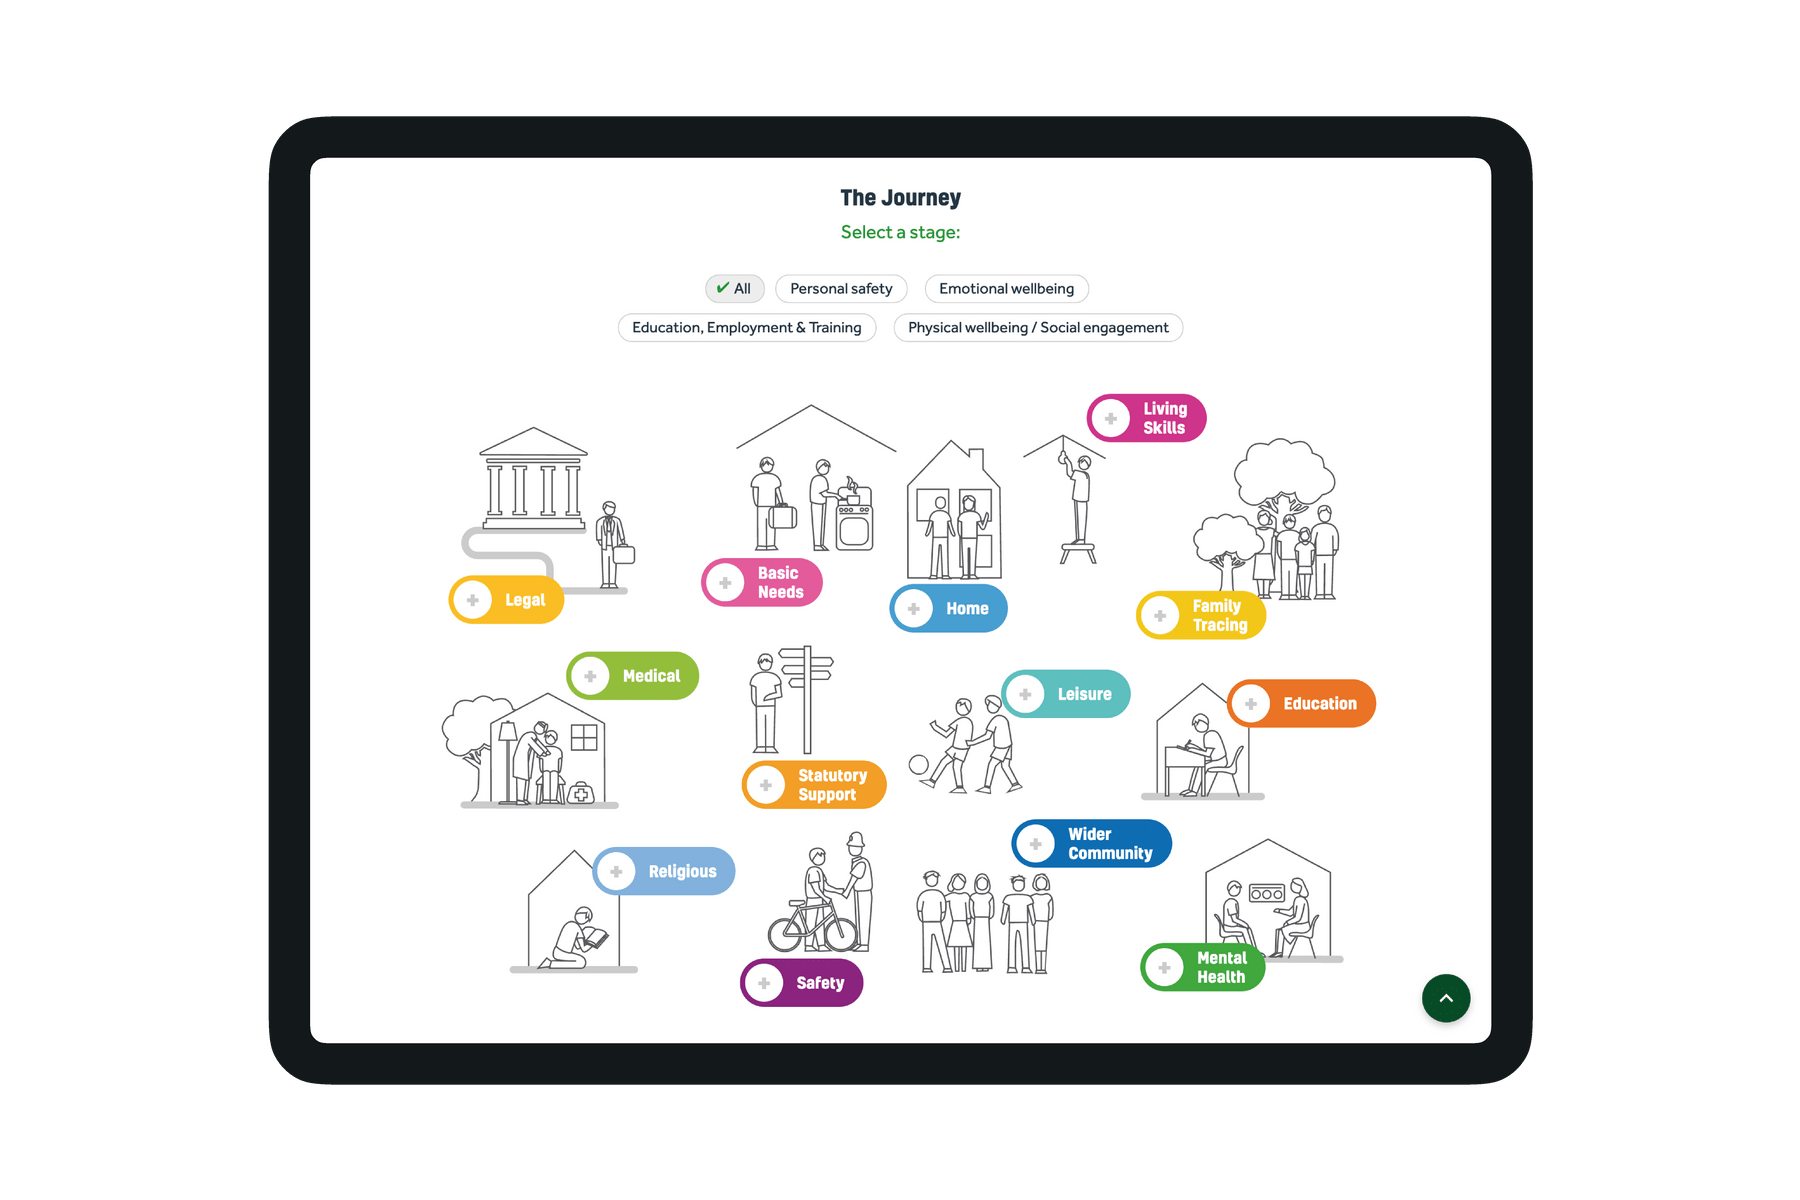 """iPad Pro showing the interactive """"The Journey"""" graphic."""